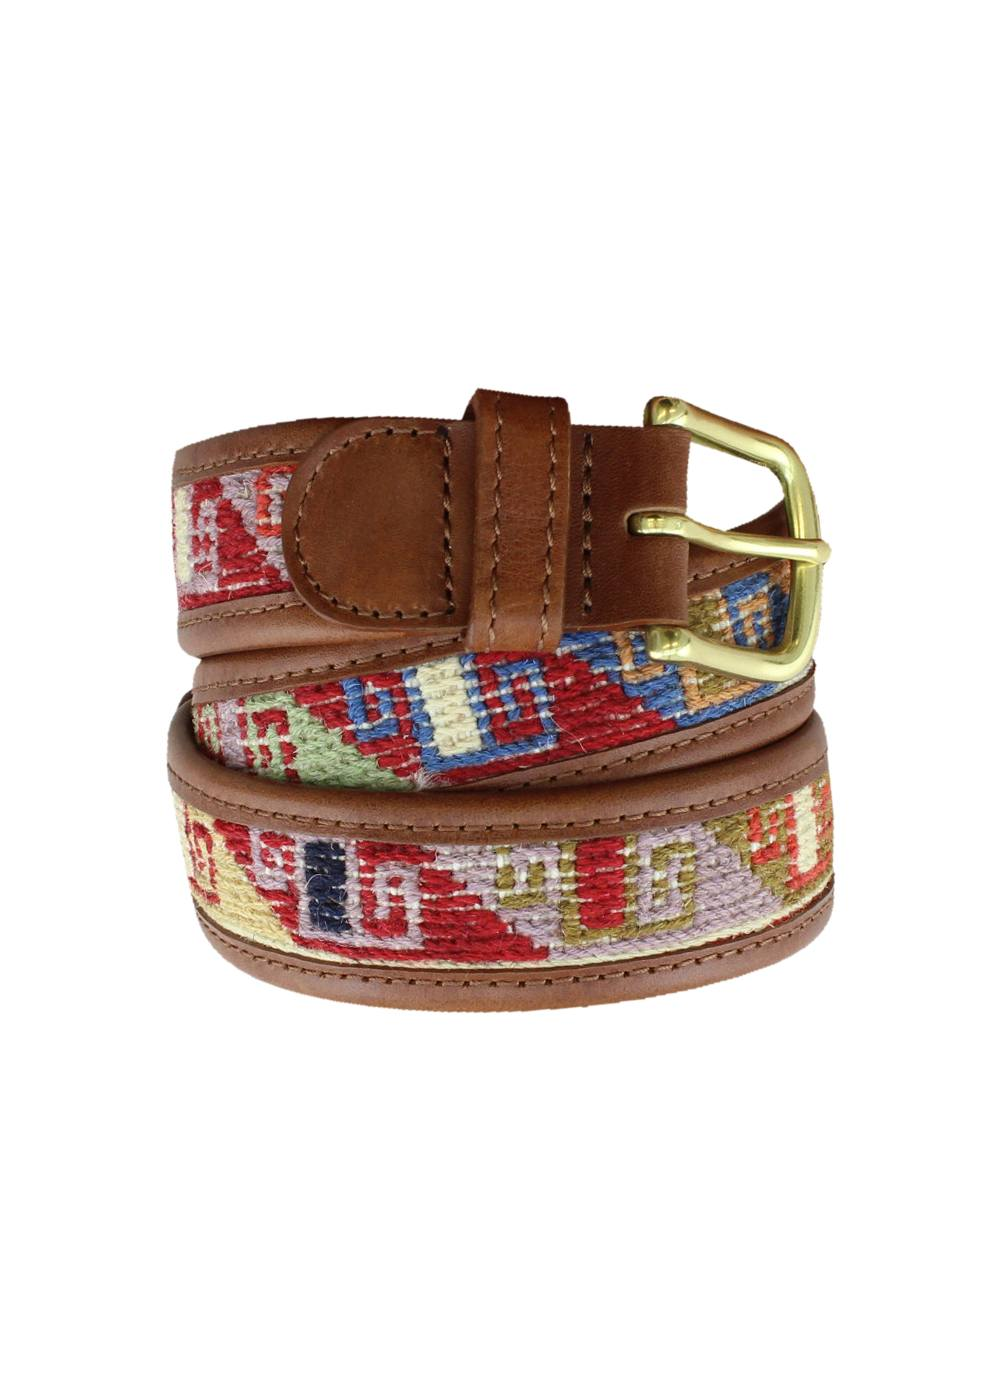 Archived Acc - Sumak Kilim Belt - Size 36